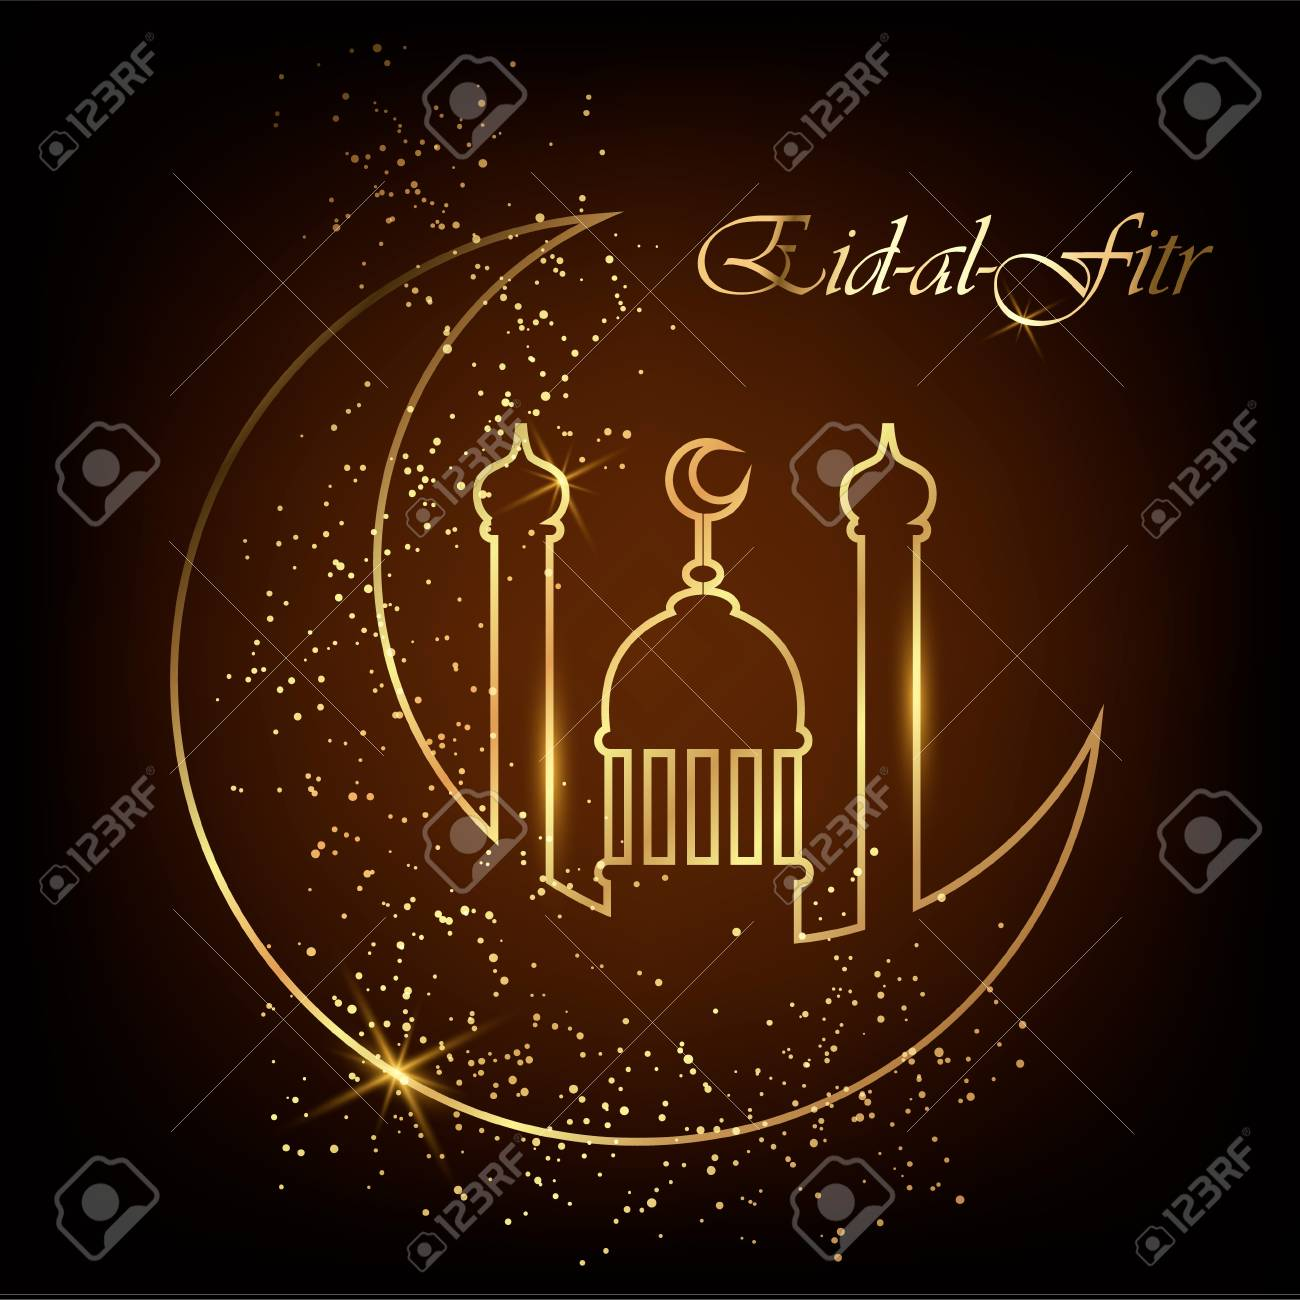 Eid al fitr greeting card with line mosque dome moon and golden eid al fitr greeting card with line mosque dome moon and golden sand eid m4hsunfo